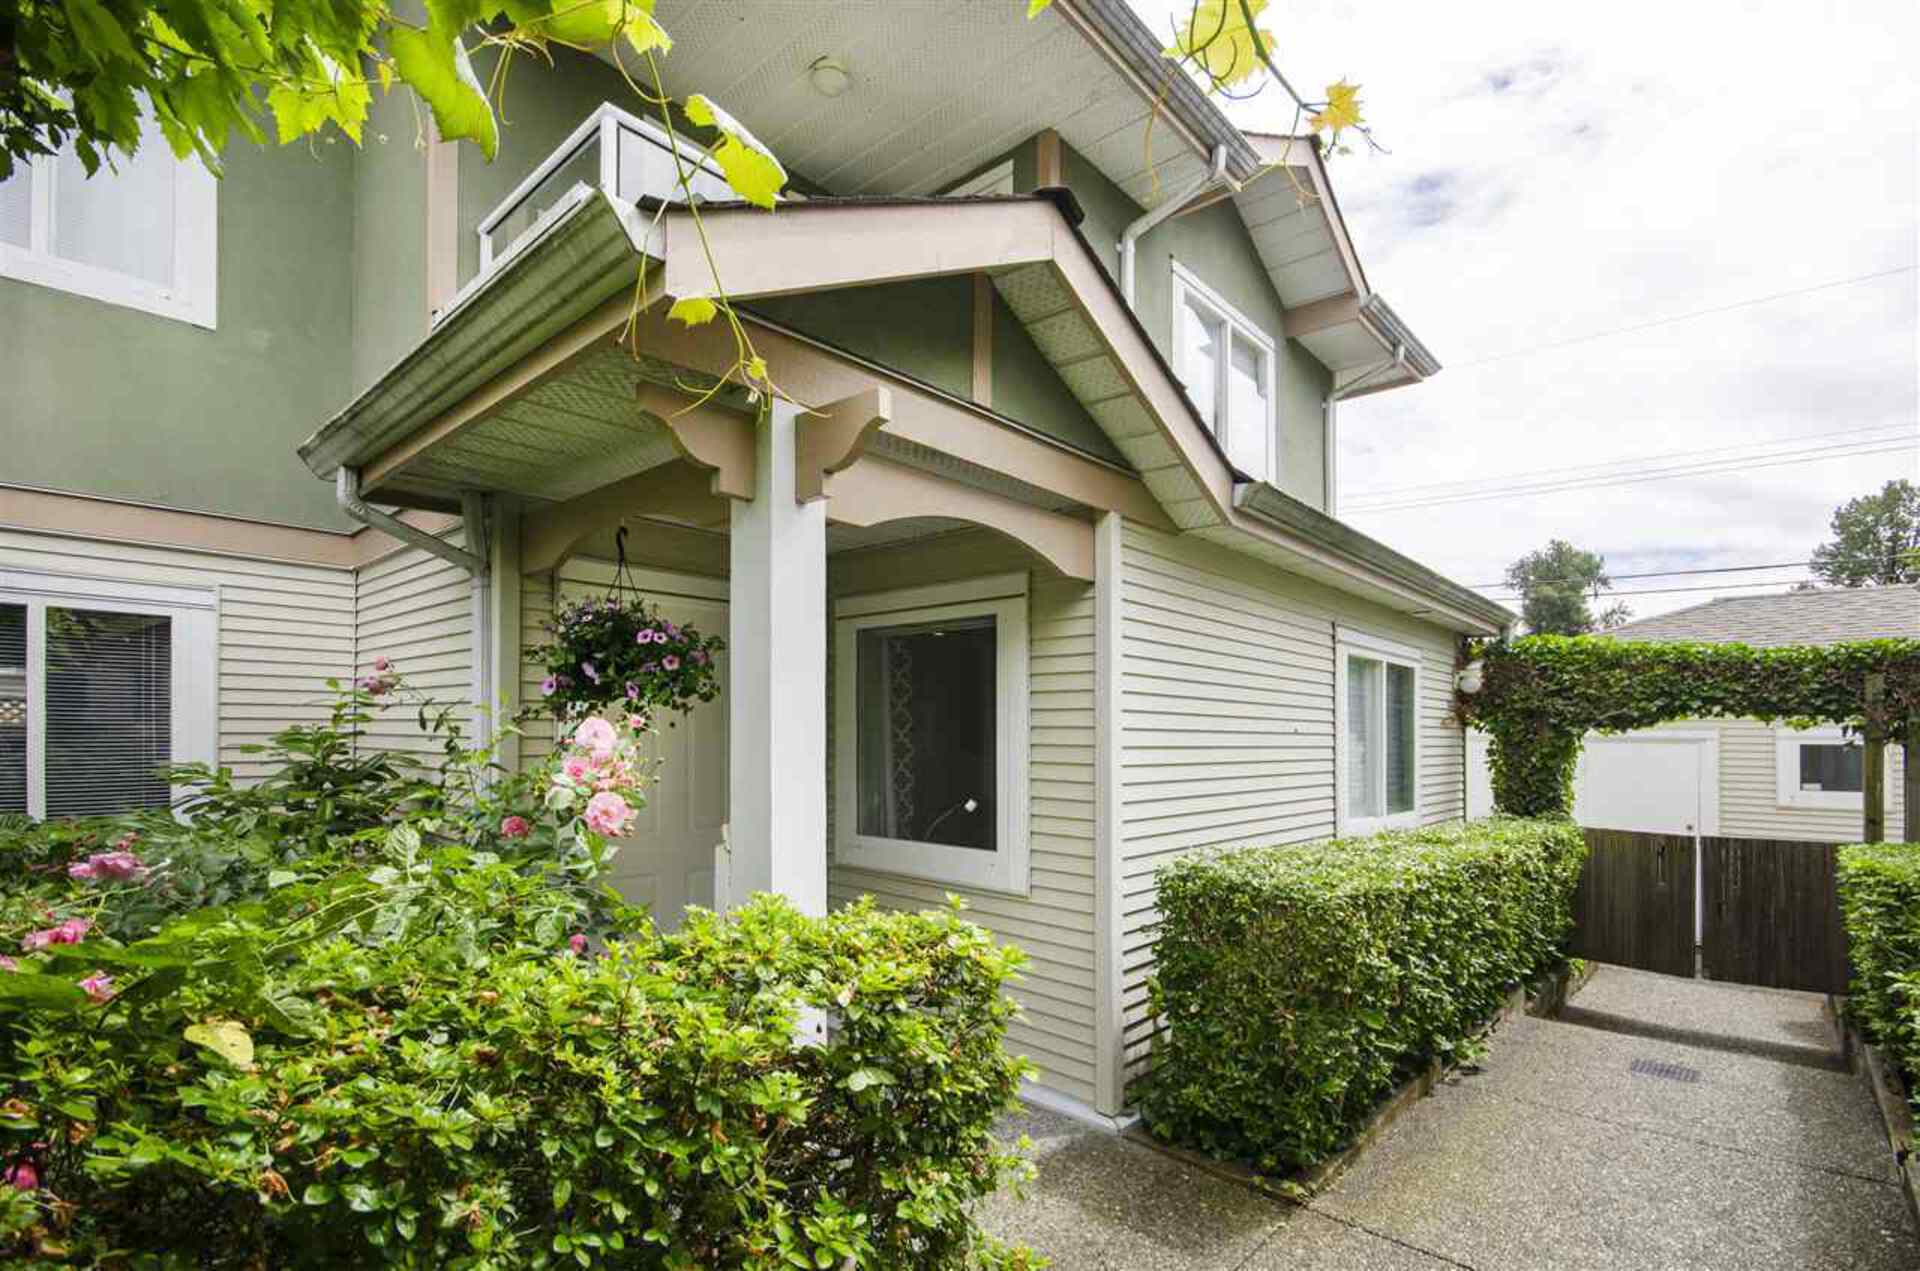 1233-w-16th-street-norgate-north-vancouver-24 at 6 - 1233 W 16th Street, Norgate, North Vancouver